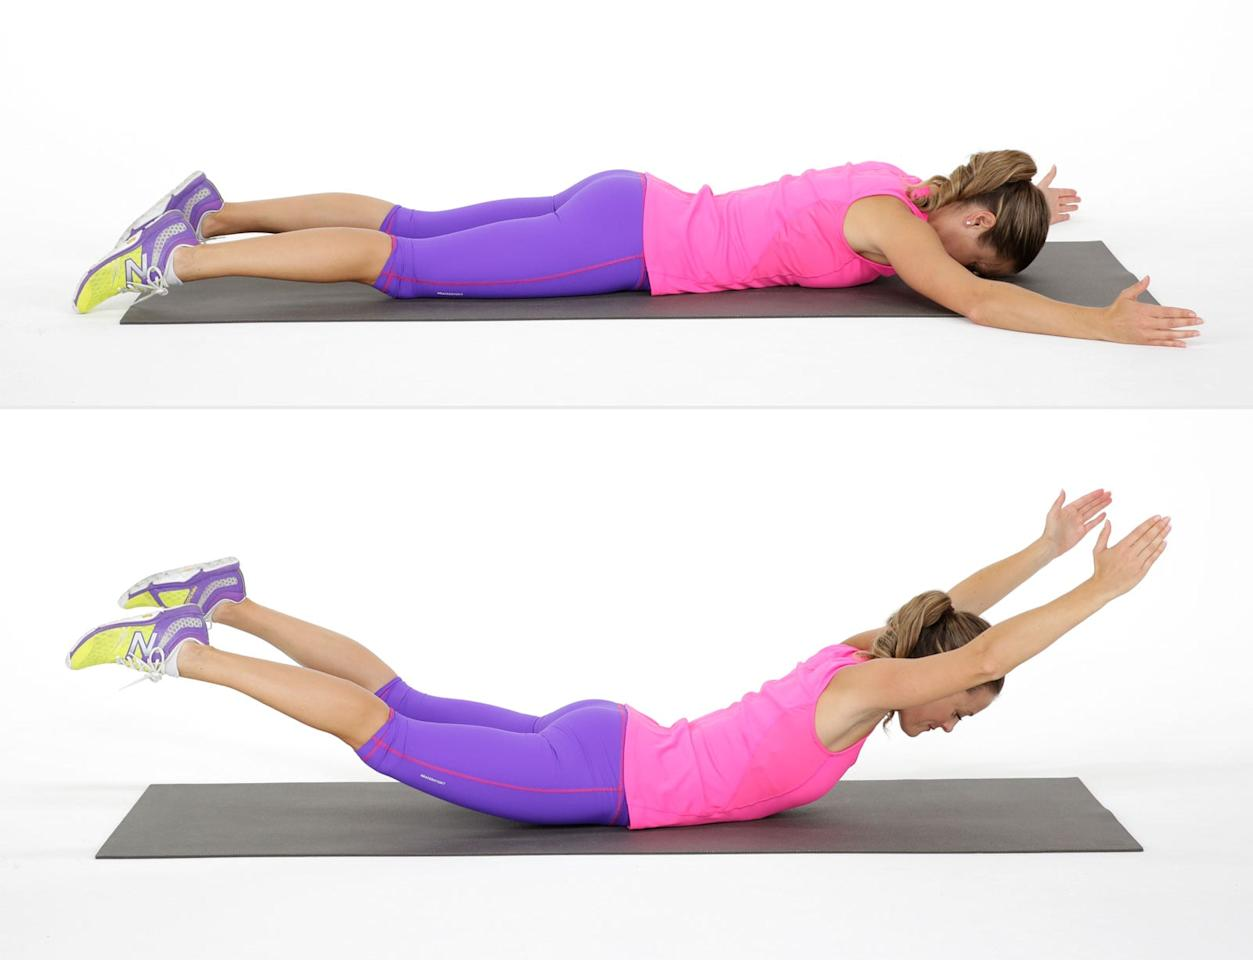 <ul> <li>Lie on your belly, engage your abs, and extend your arms straight out in front of you.</li> <li>Lift your legs, arms, and chest off the floor. Stretch your arms and legs like you're trying to reach something in in front and behind you.</li> <li>Look at the ground slightly in front of your to keep your neck long.</li> <li>Hold for 30-60 seconds.</li> </ul>